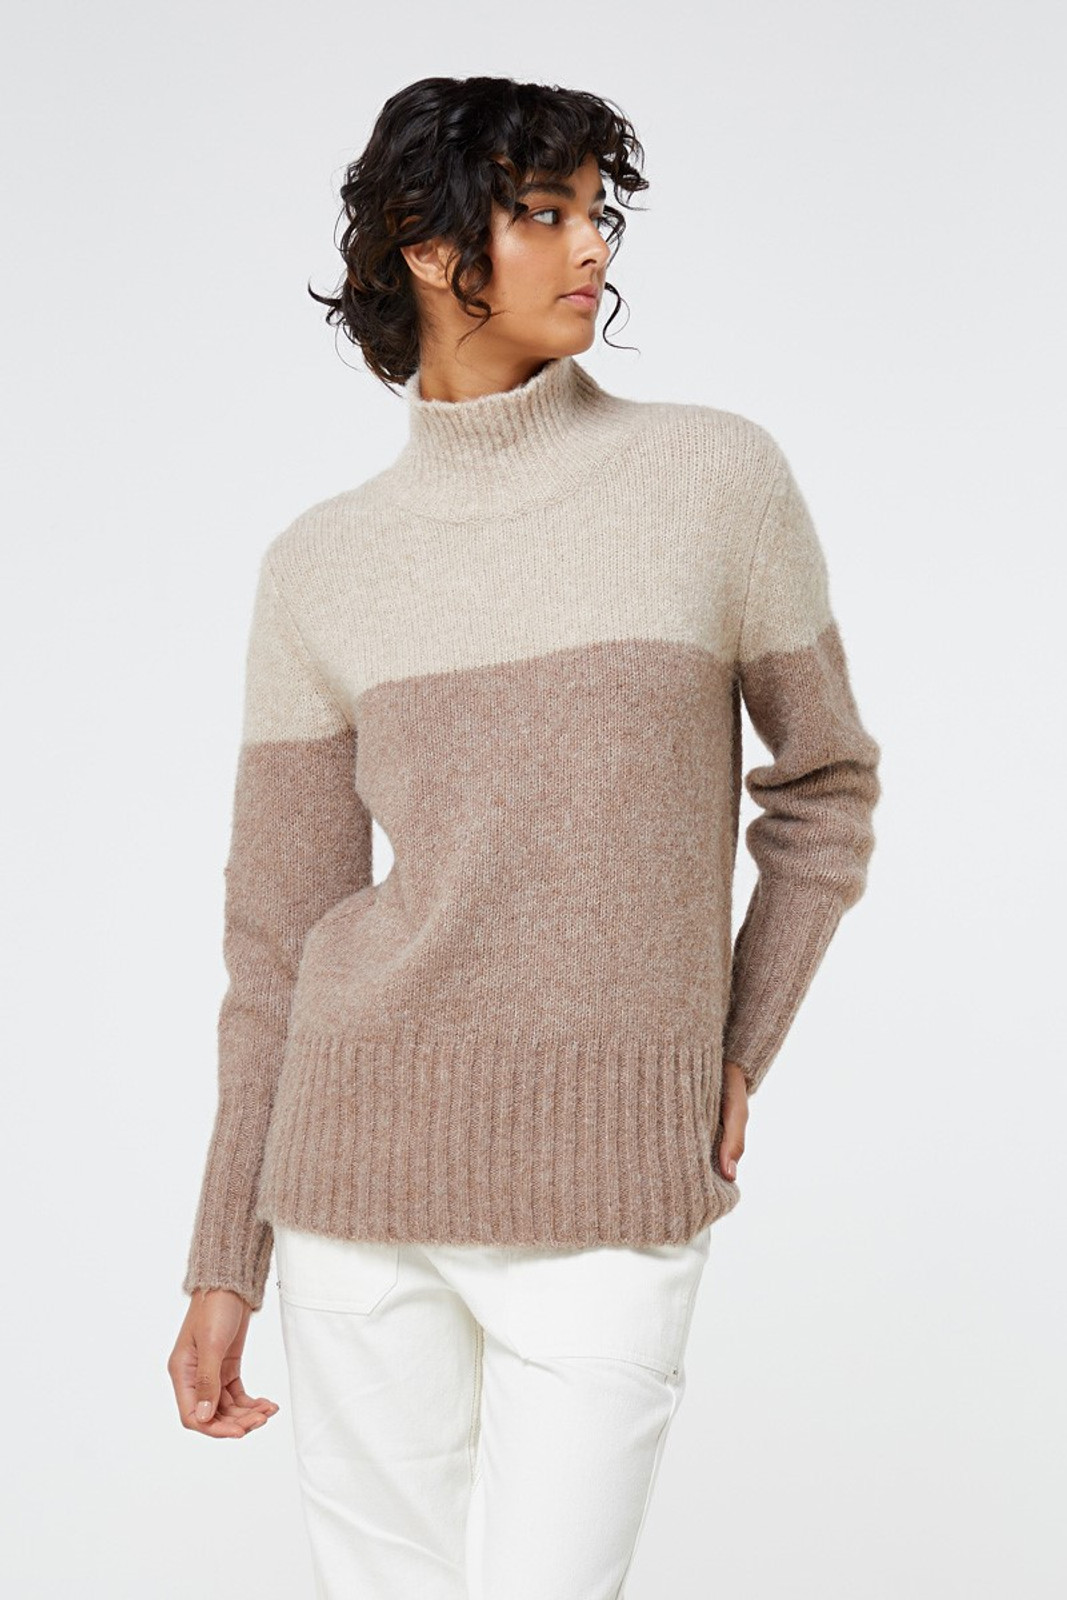 Elka Collective Ana Knit Multi  7